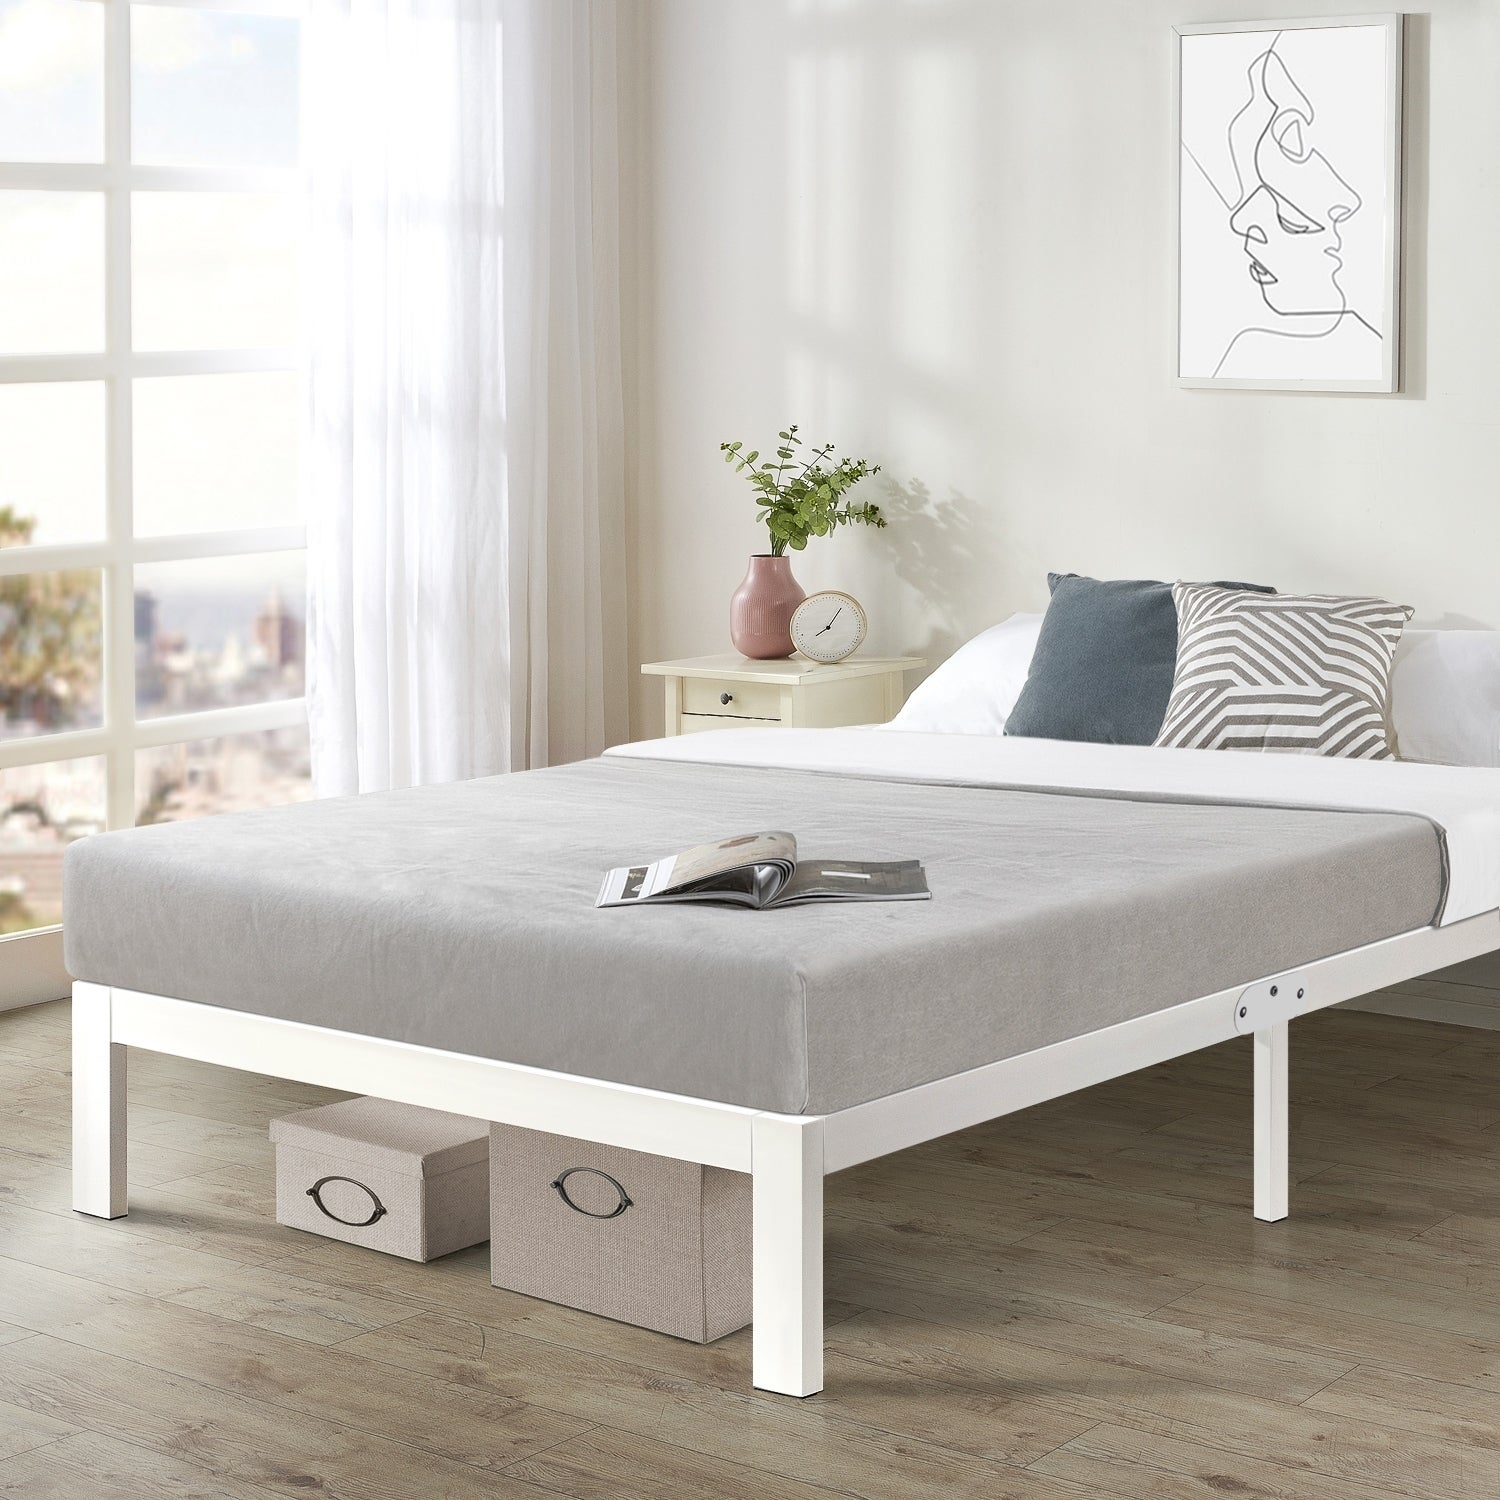 California King Size Heavy Duty Bed Frame Steel Slat Platform Series Titan E White Crown Comfort On Sale Overstock 20859126